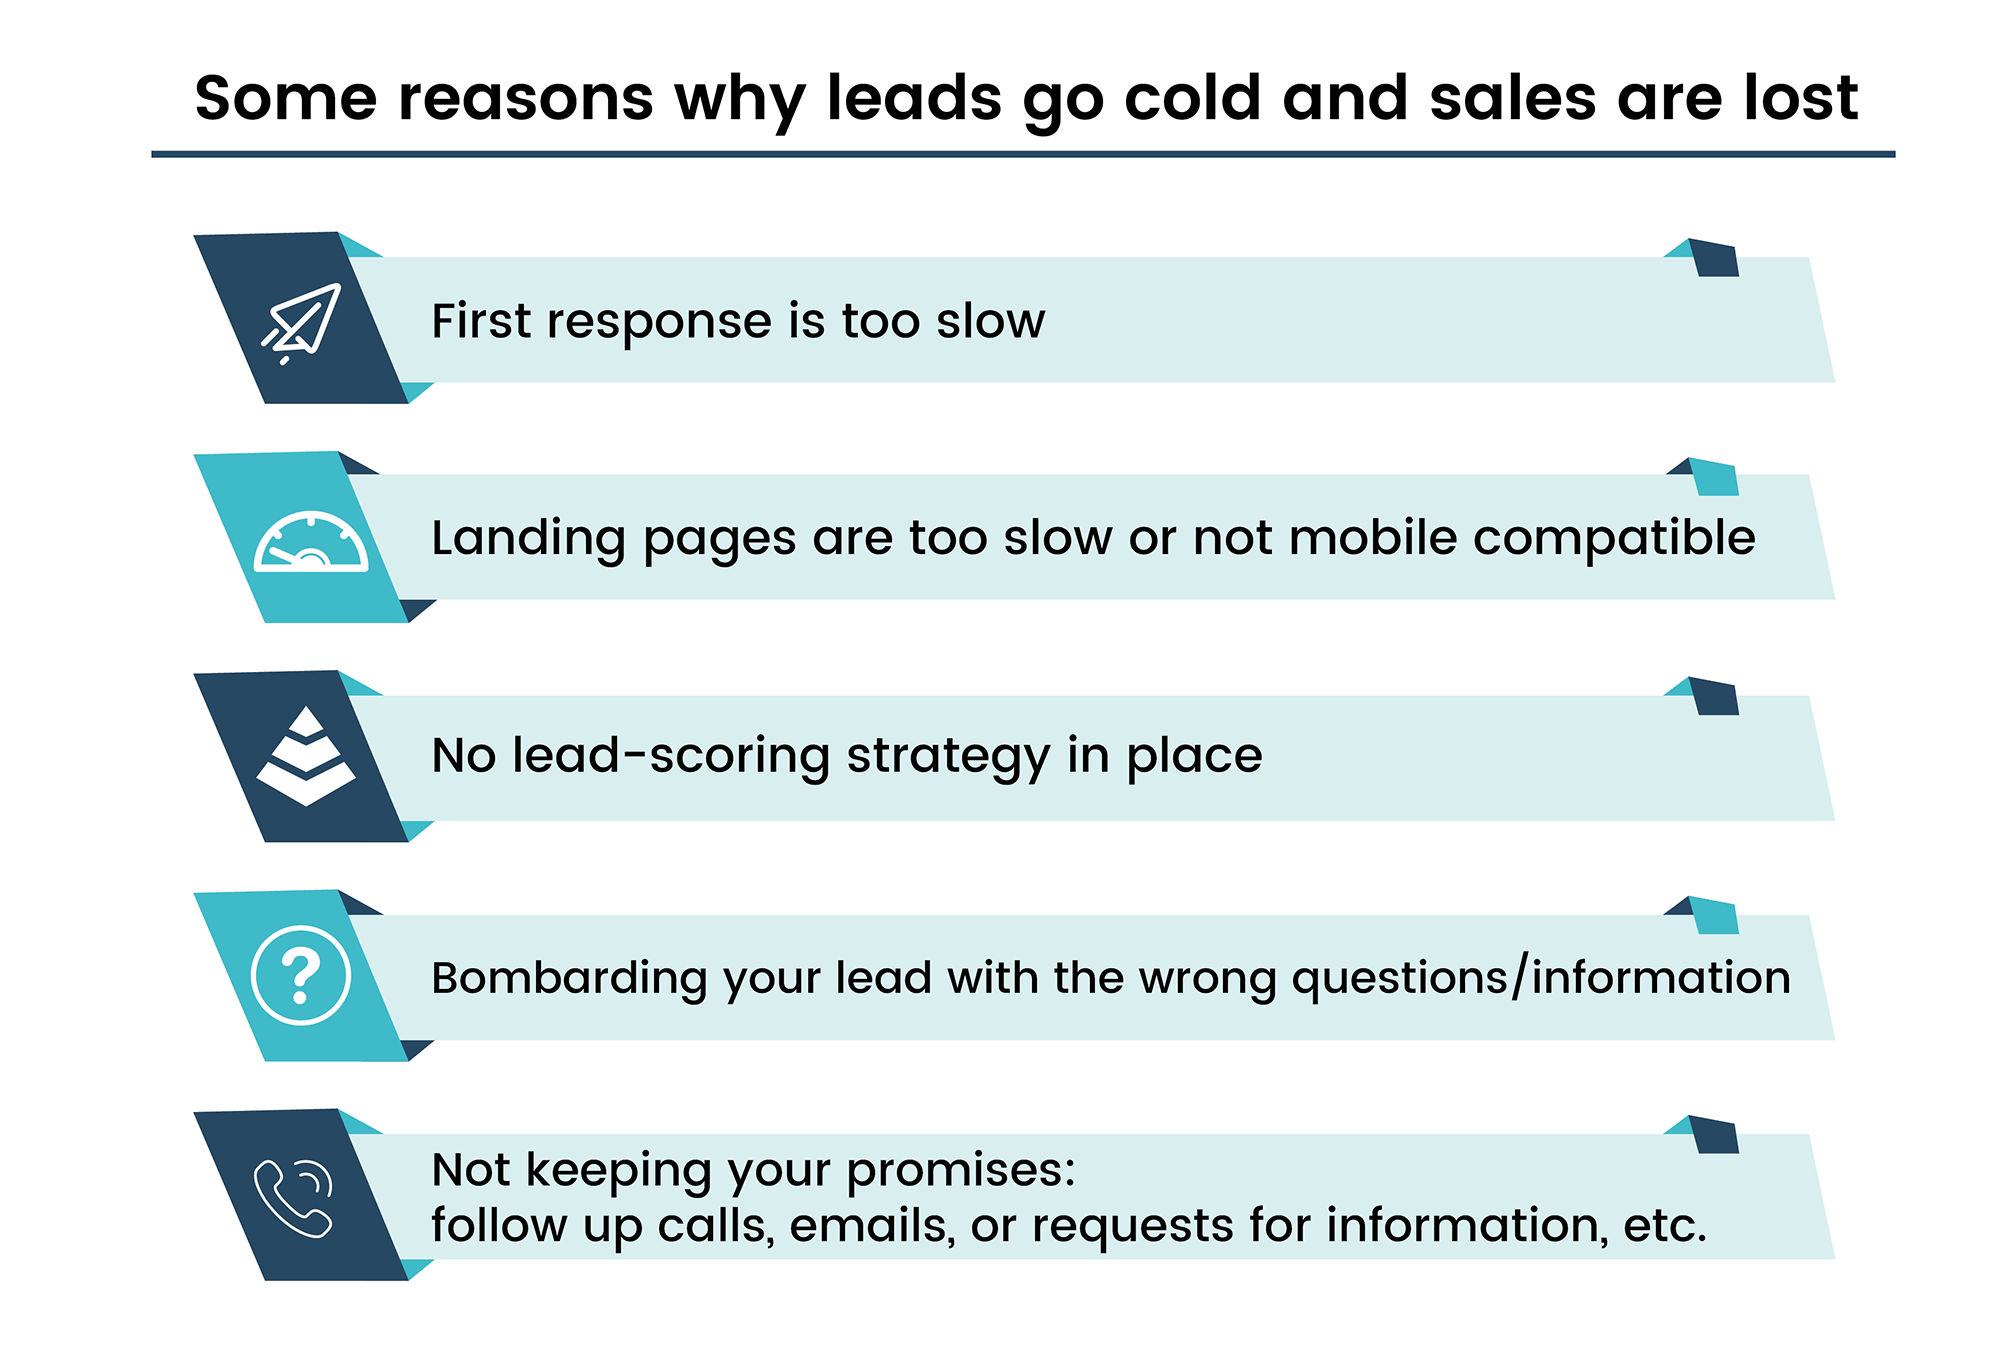 Loss of Sales Reasons by Teamgate